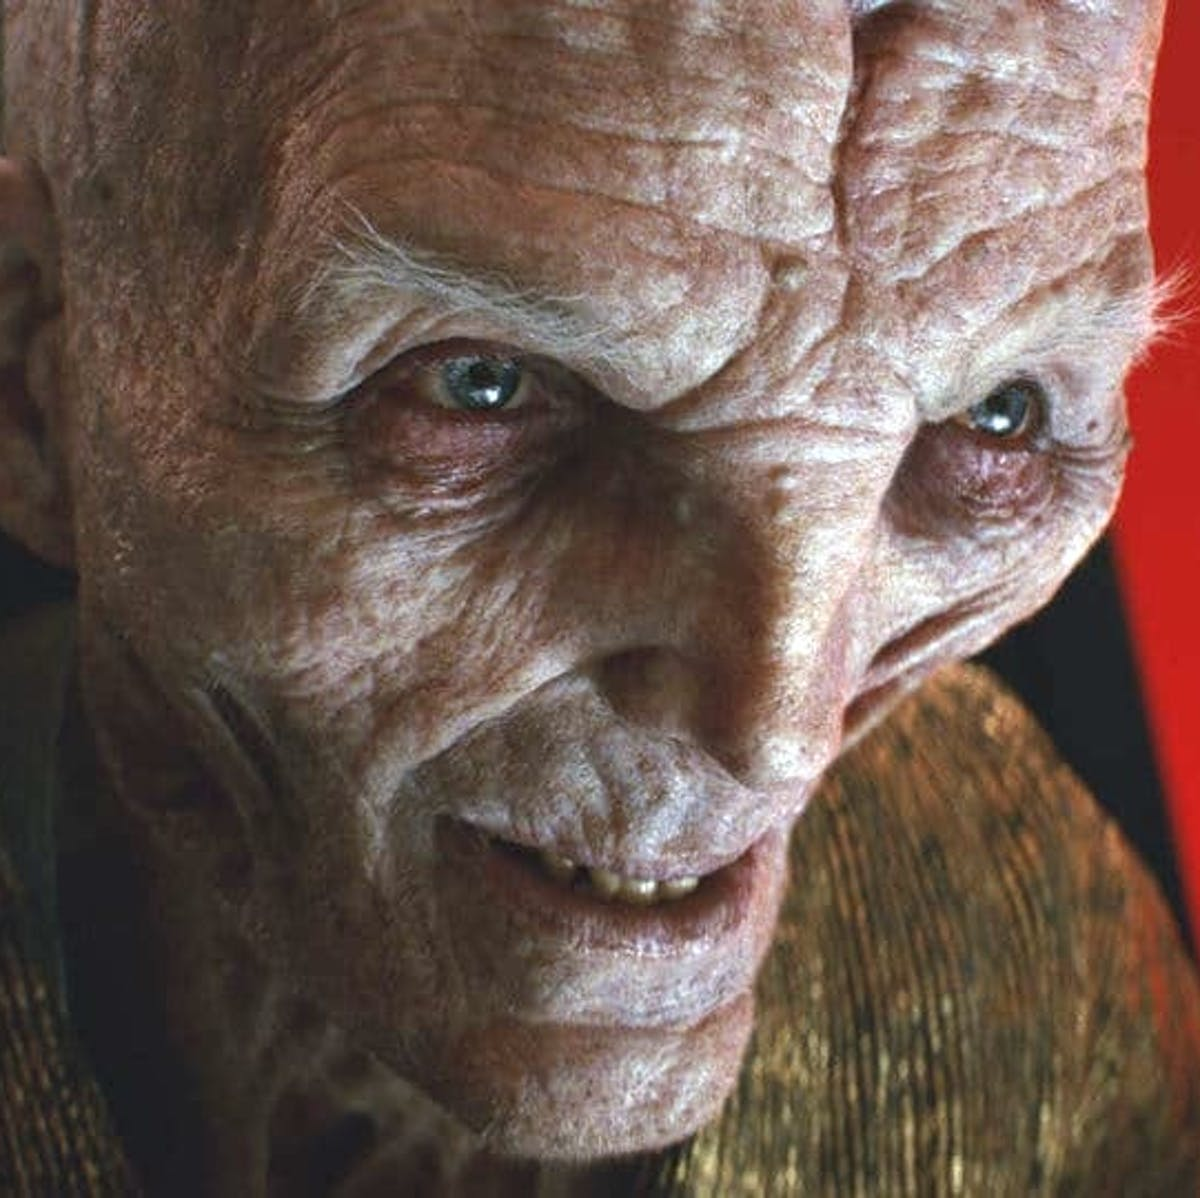 'Rise of Skywalker' Snoke theory could explain how Palpatine survived